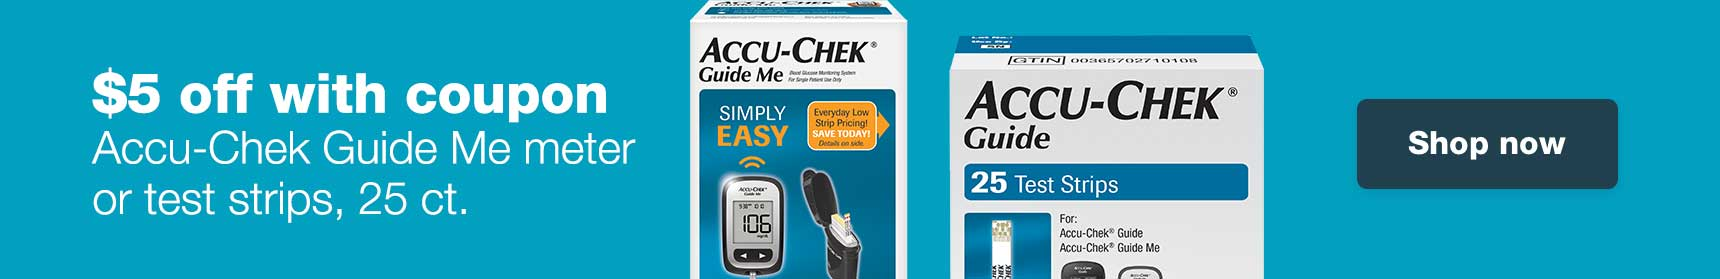 $5 off with coupon. Accu-Chek Guide Me meter or test strips, 25 ct. Shop now.